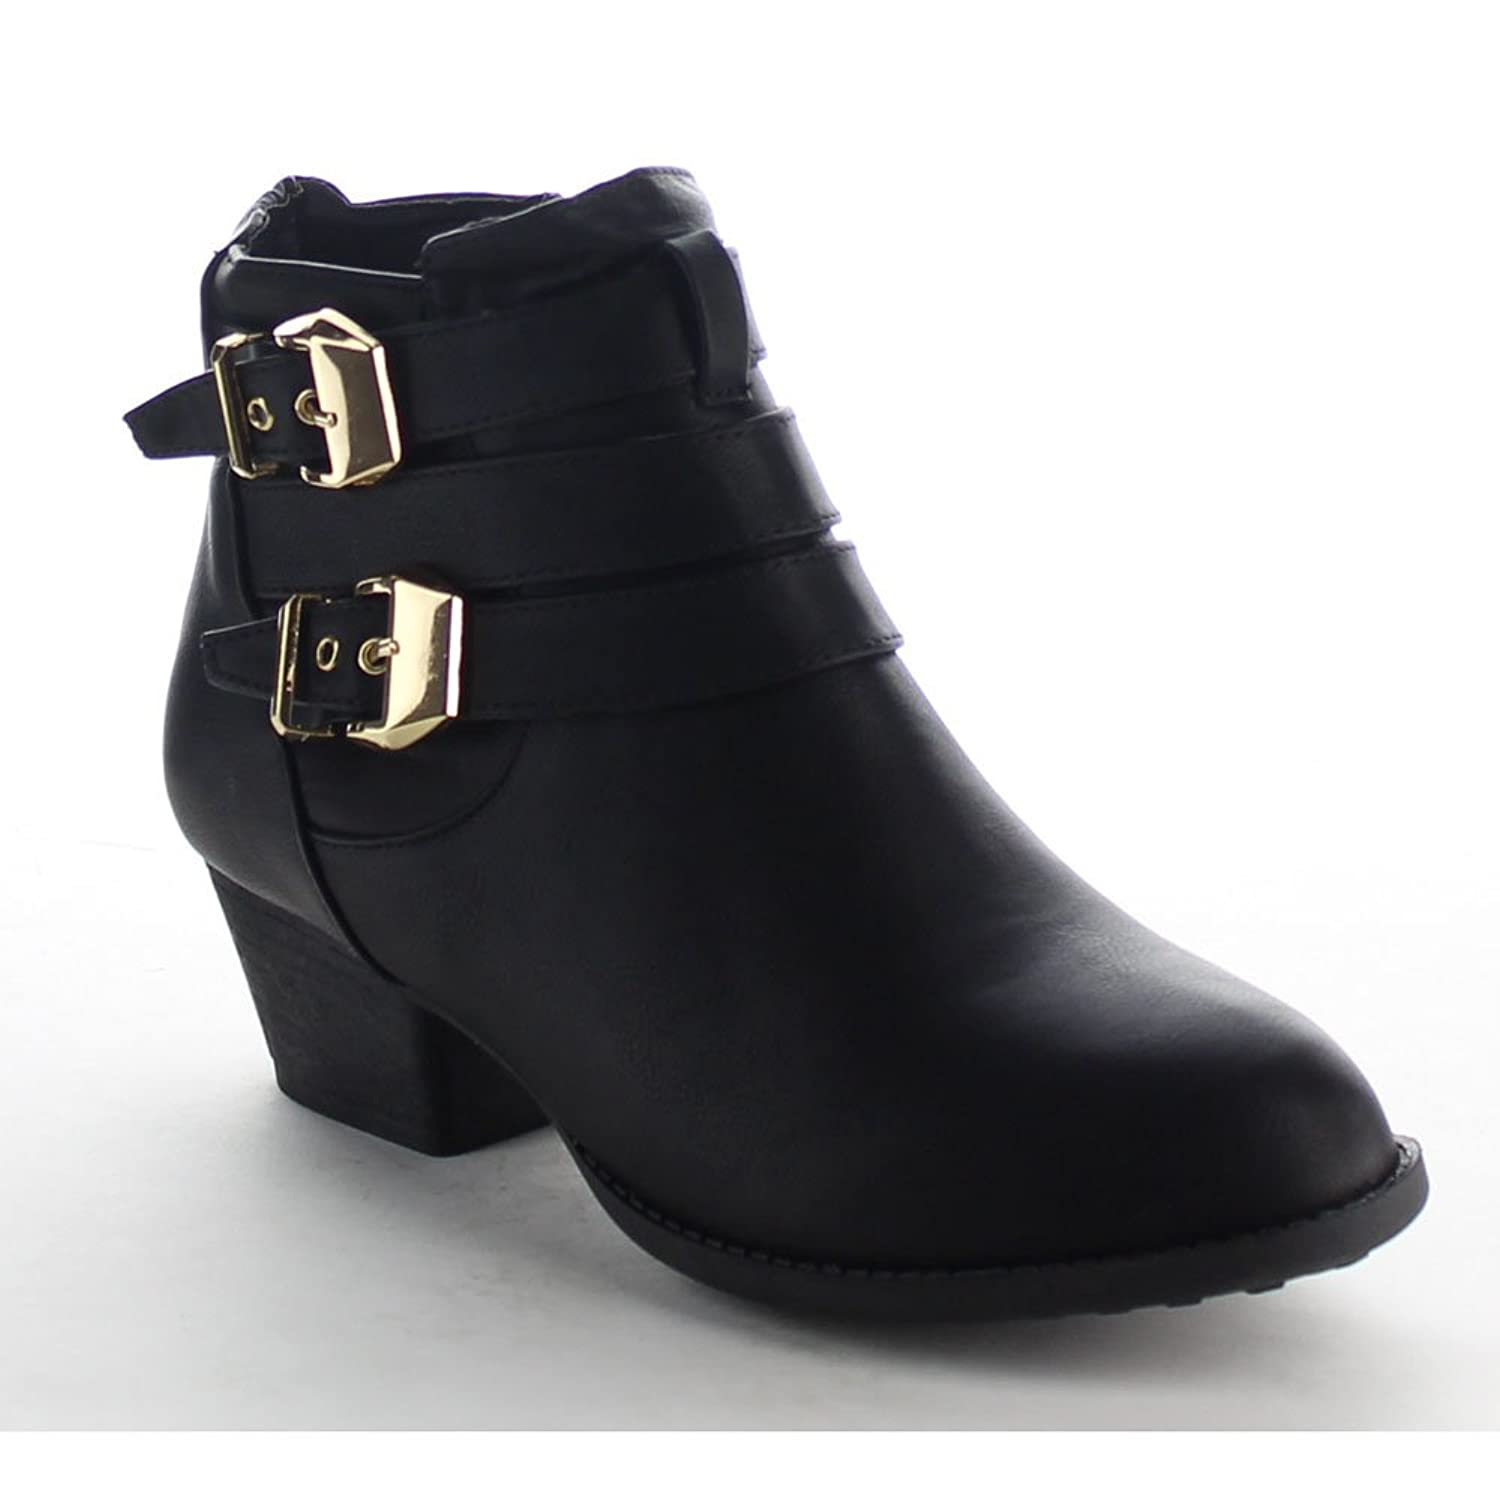 Amazon Best Sellers: Best Women\'s Ankle Boots & Booties